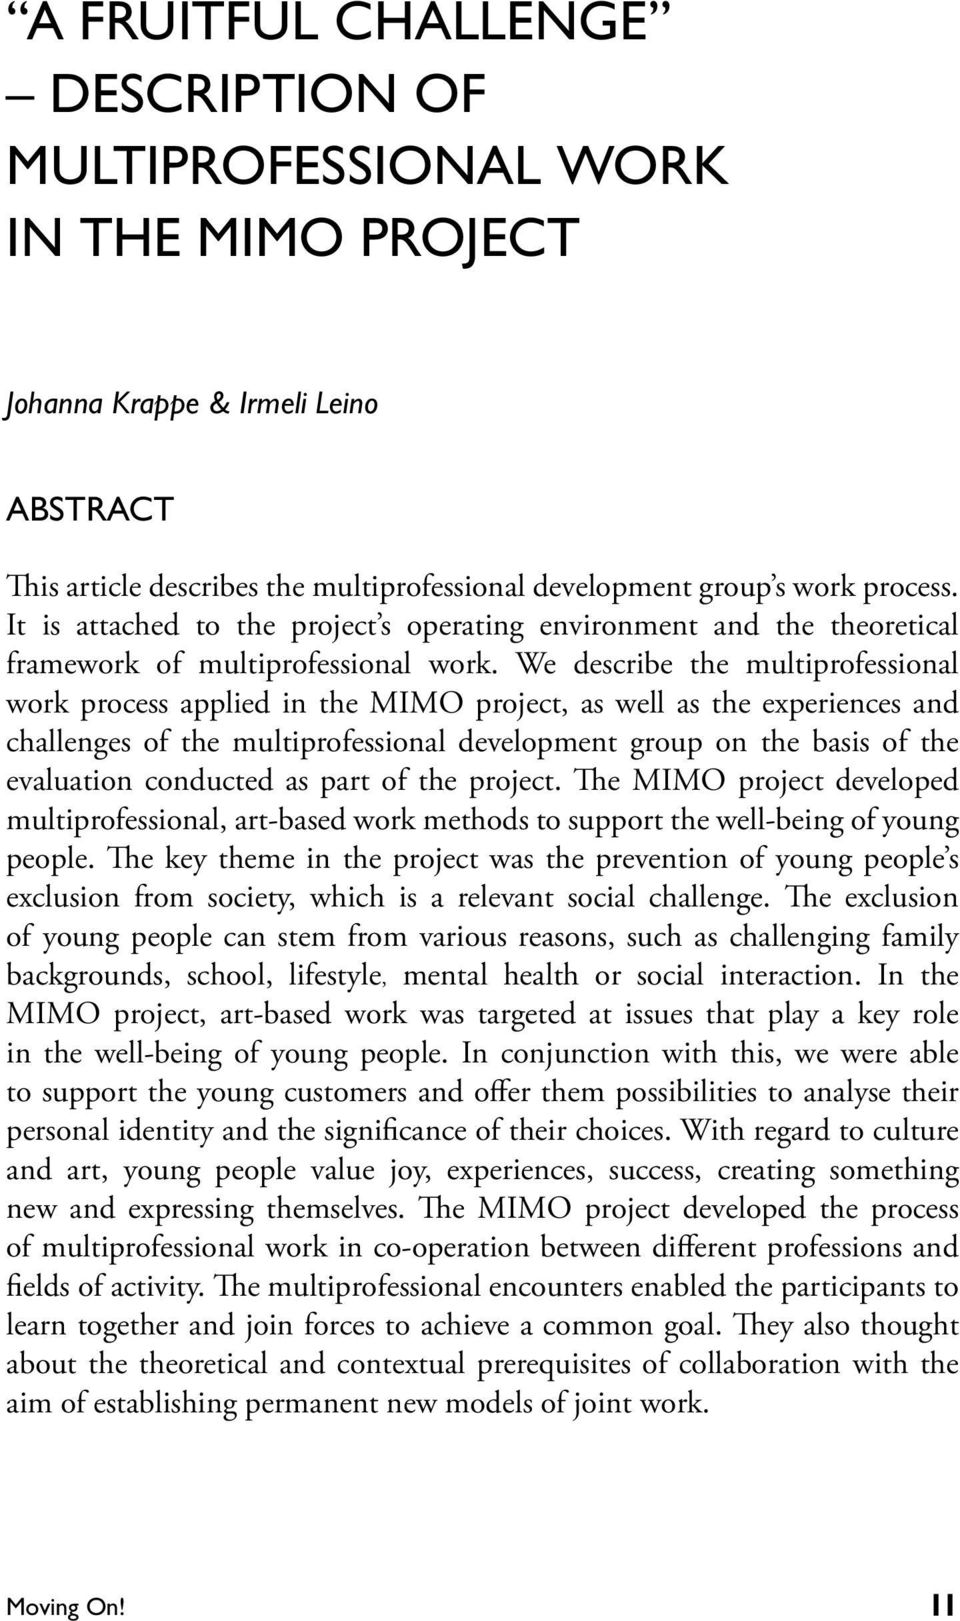 We describe the multiprofessional work process applied in the MIMO project, as well as the experiences and challenges of the multiprofessional development group on the basis of the evaluation